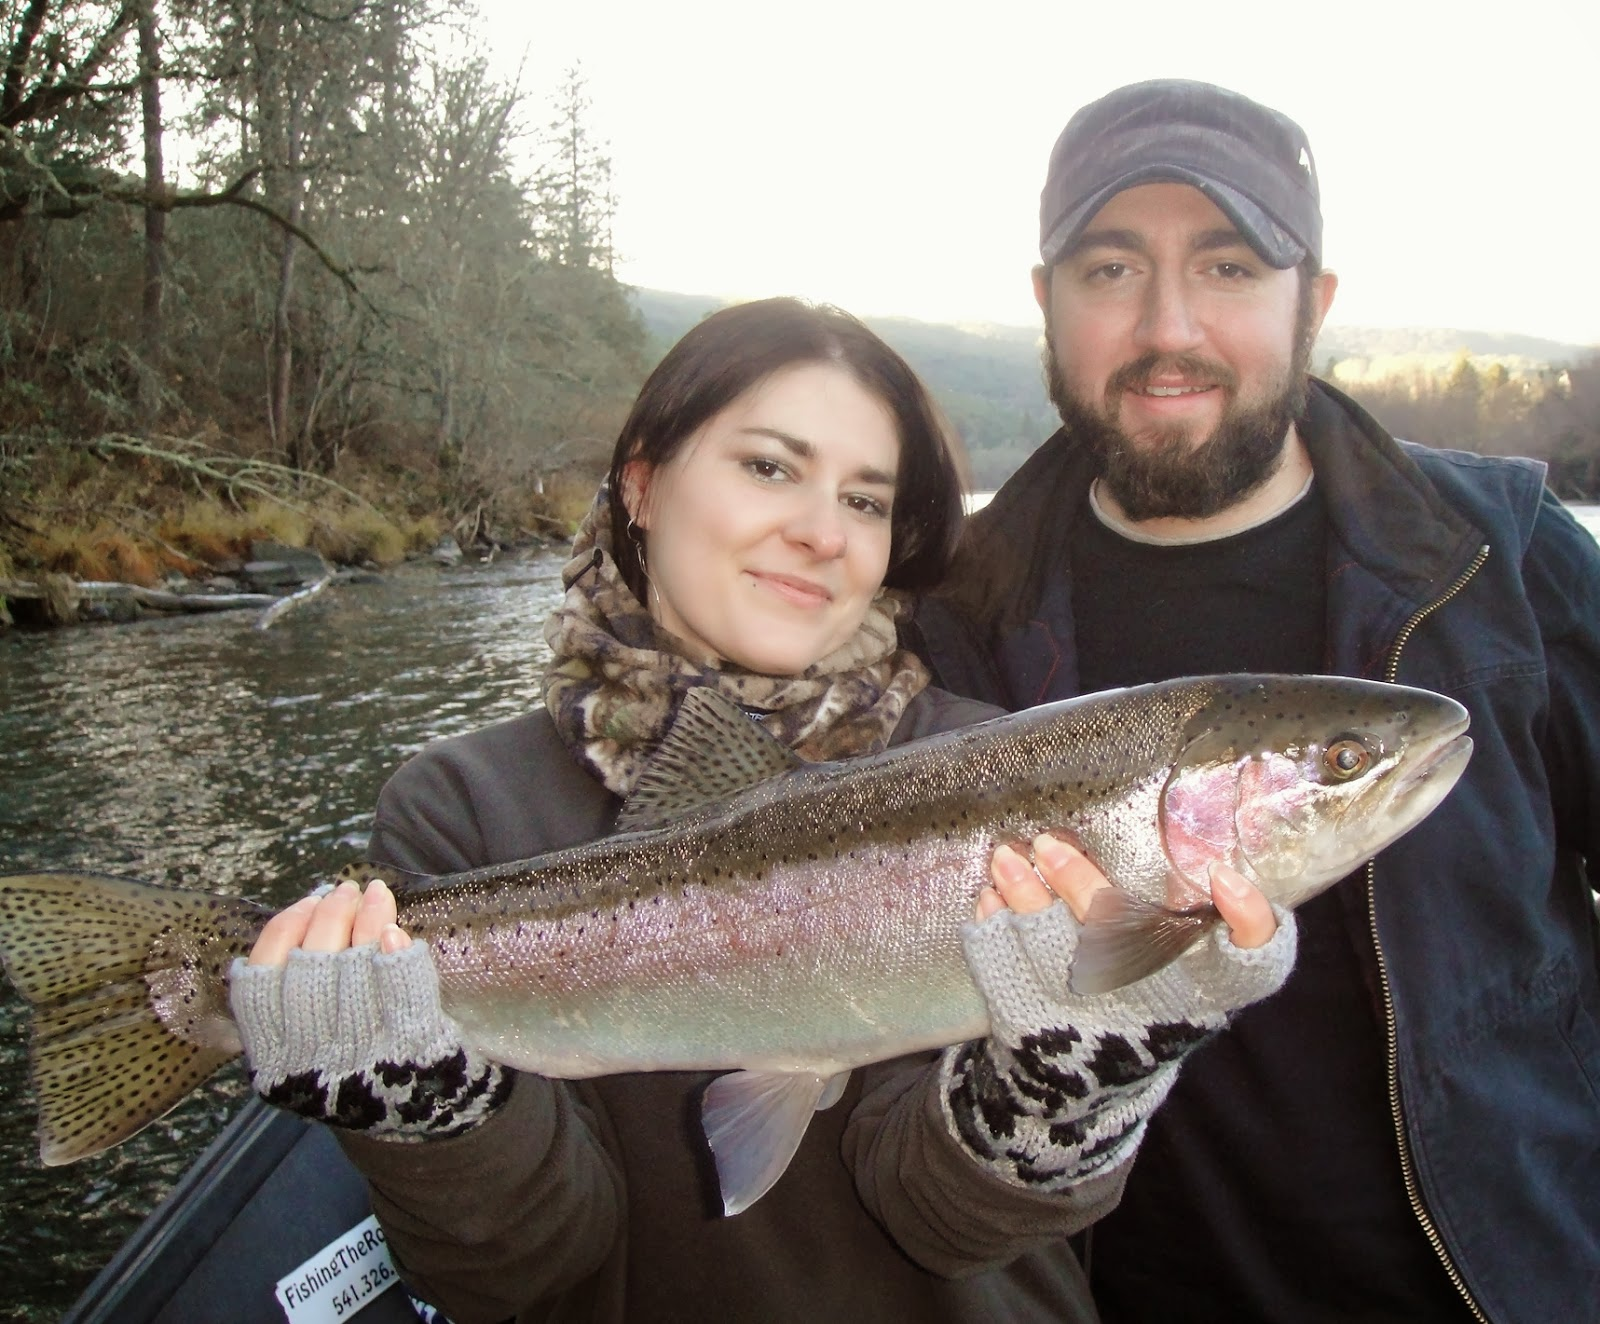 Oregon fishing report for the rogue river rogue river for Fishing report oregon